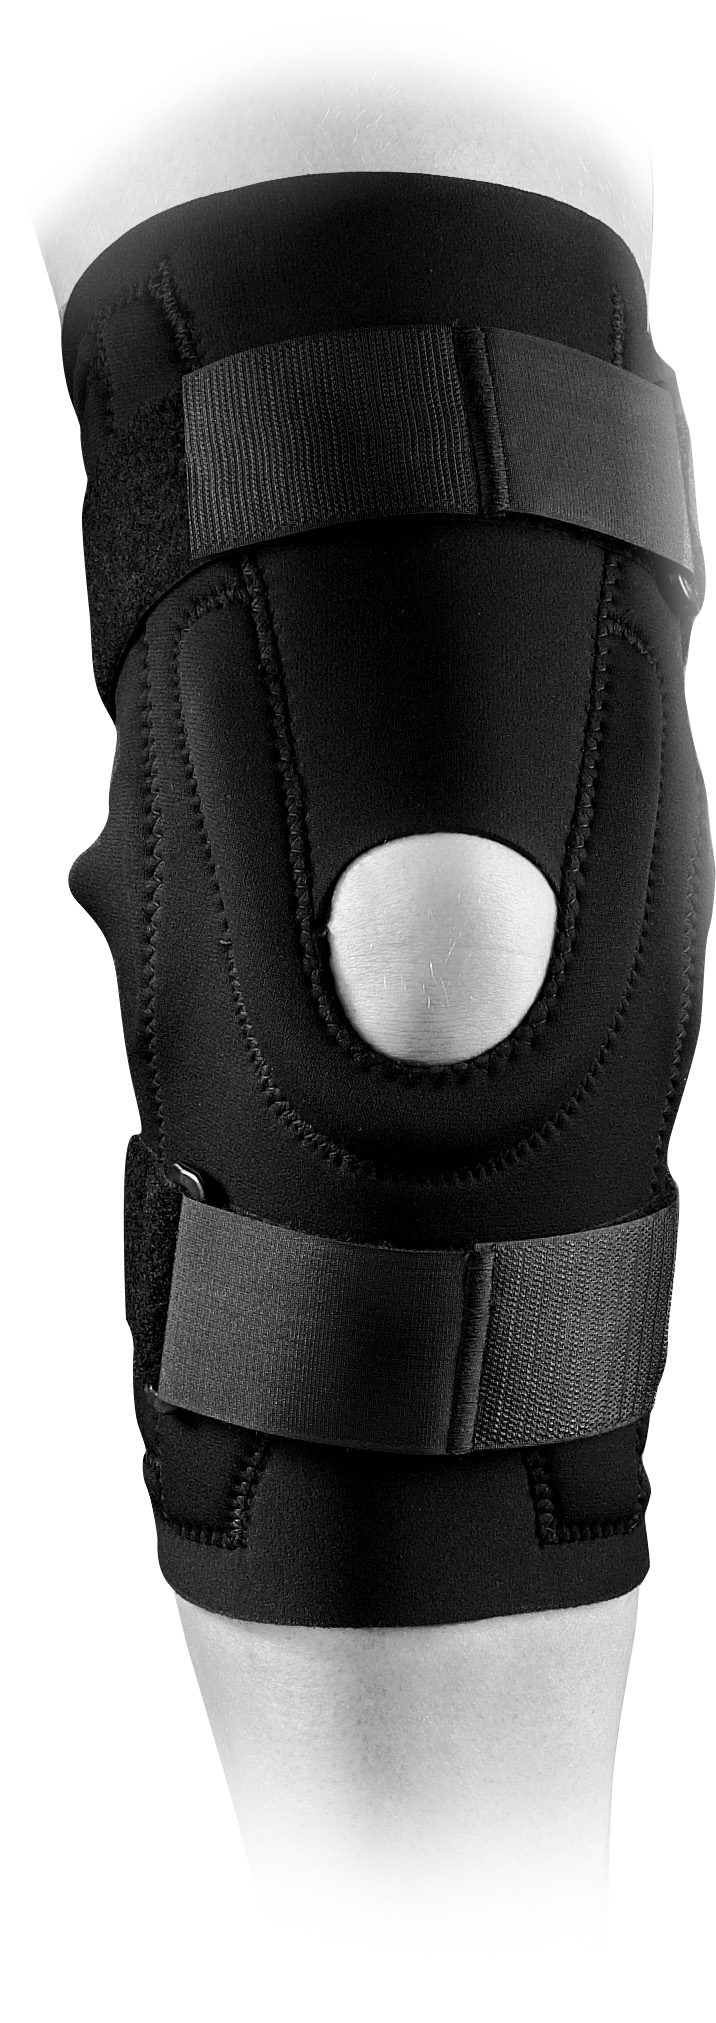 Permforma Knee Support